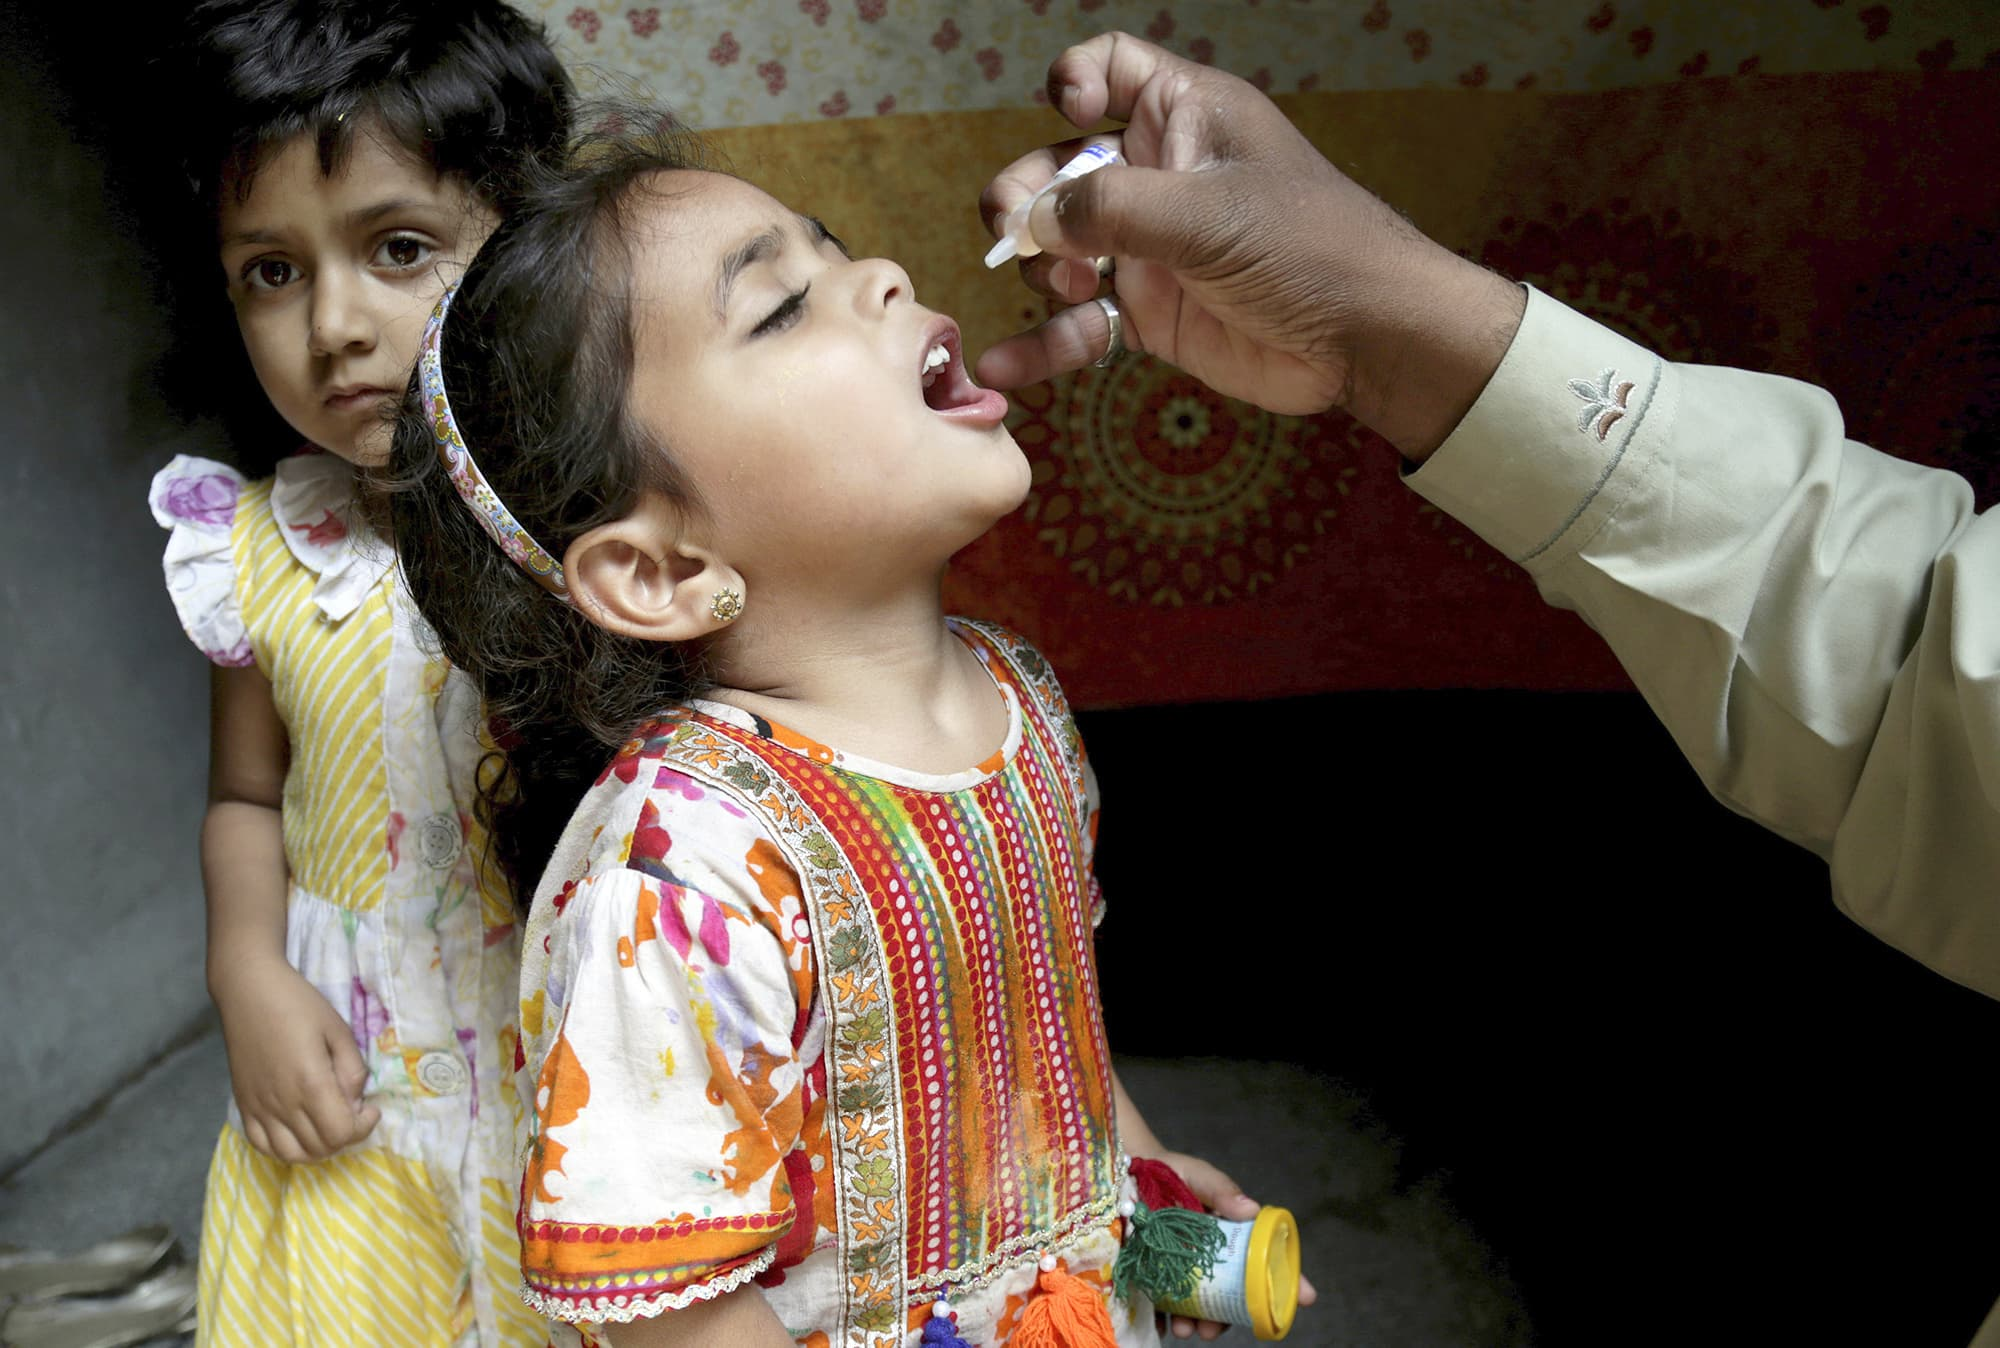 A health worker gives a polio vaccine to a girl in Lahore, Pakistan, Monday, April 9, 2018. A Pakistani official said authorities launched a new polio vaccination drive, aiming to reach 38.7 million children under the age of 5. (AP Photo/K.M. Chaudary) — Copyright 2018 The Associated Press. All rights reserved.